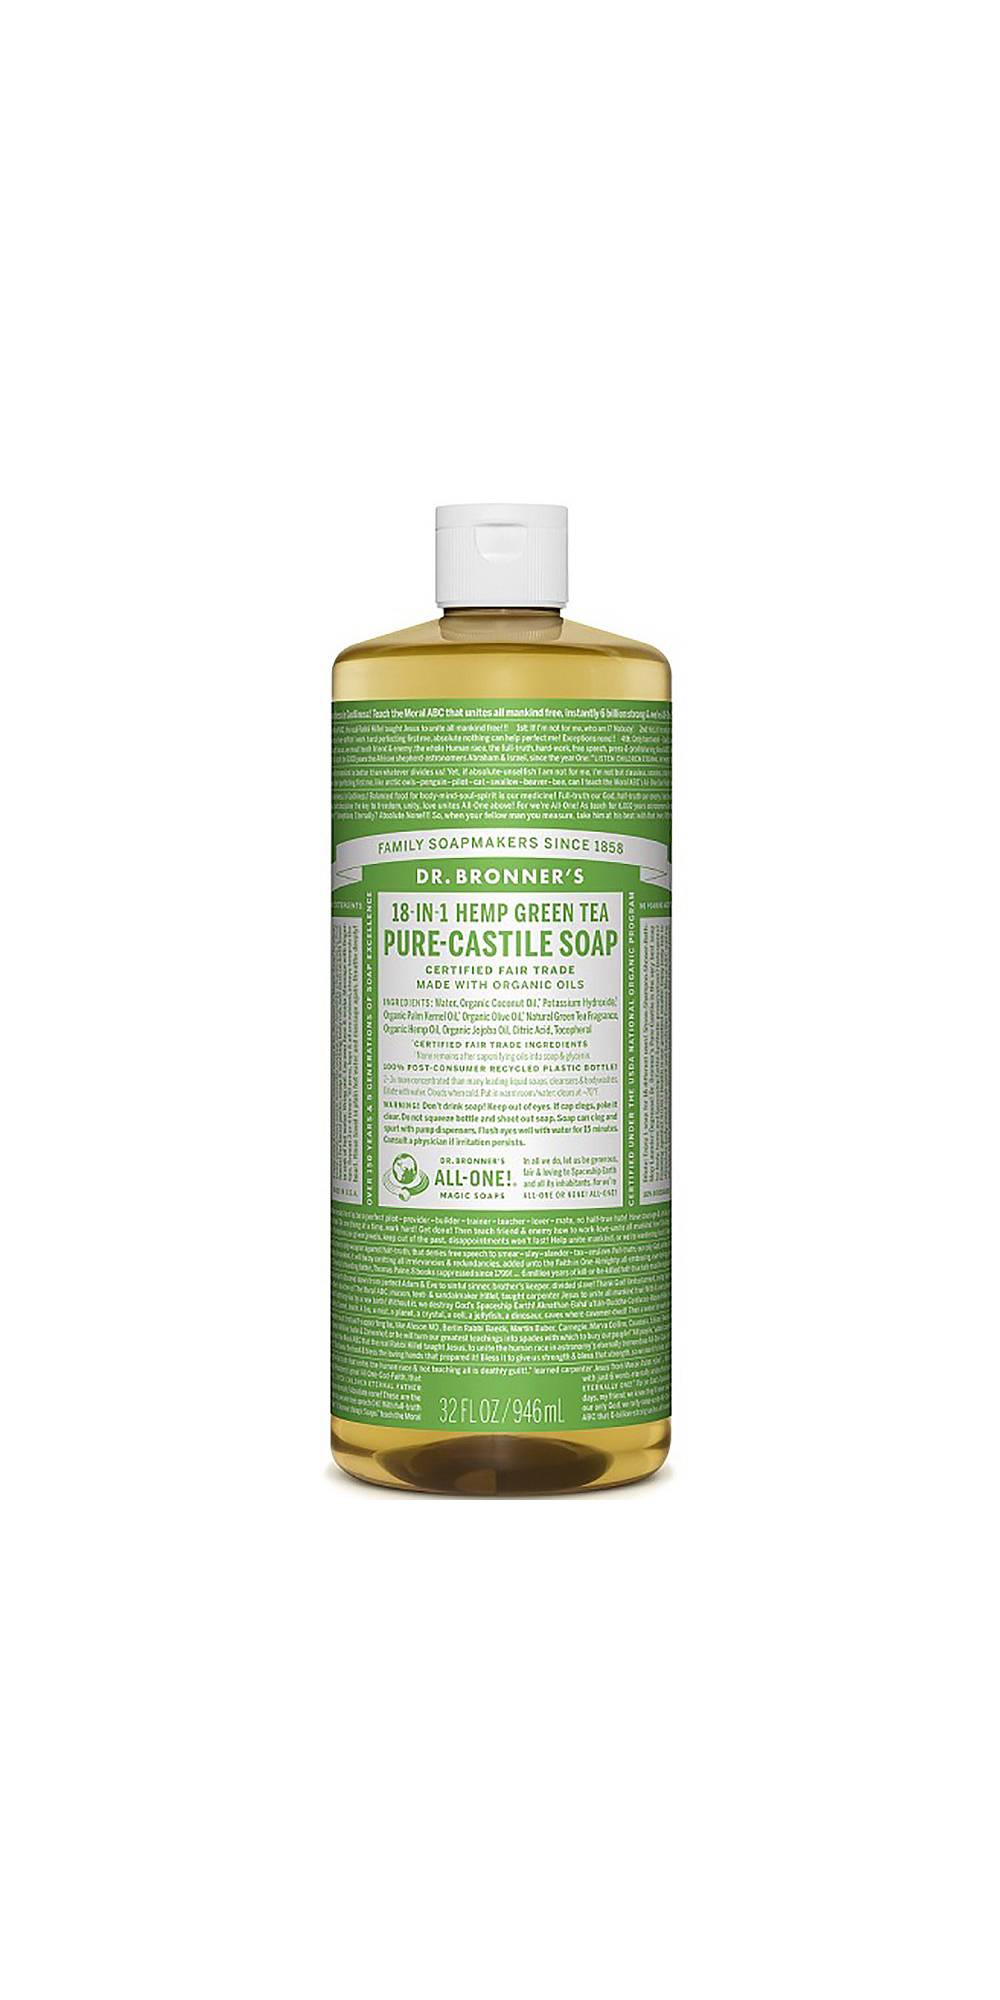 Dr Bronner Hemp Green Tea Castile soap, £19.49 - This 18-in-1 soap gives you a sensational clean, but thanks to the hydrating hemp oil it also produces an indulgent, velvety lather than nourishes from head to toe. It doesn't contain any synthetic foaming agents or preservatives and is completely biodegradable. It's a totally natural way to keep skin clean and fresh, with a silky-smooth feel post shower. We love it. Get your soap on here.